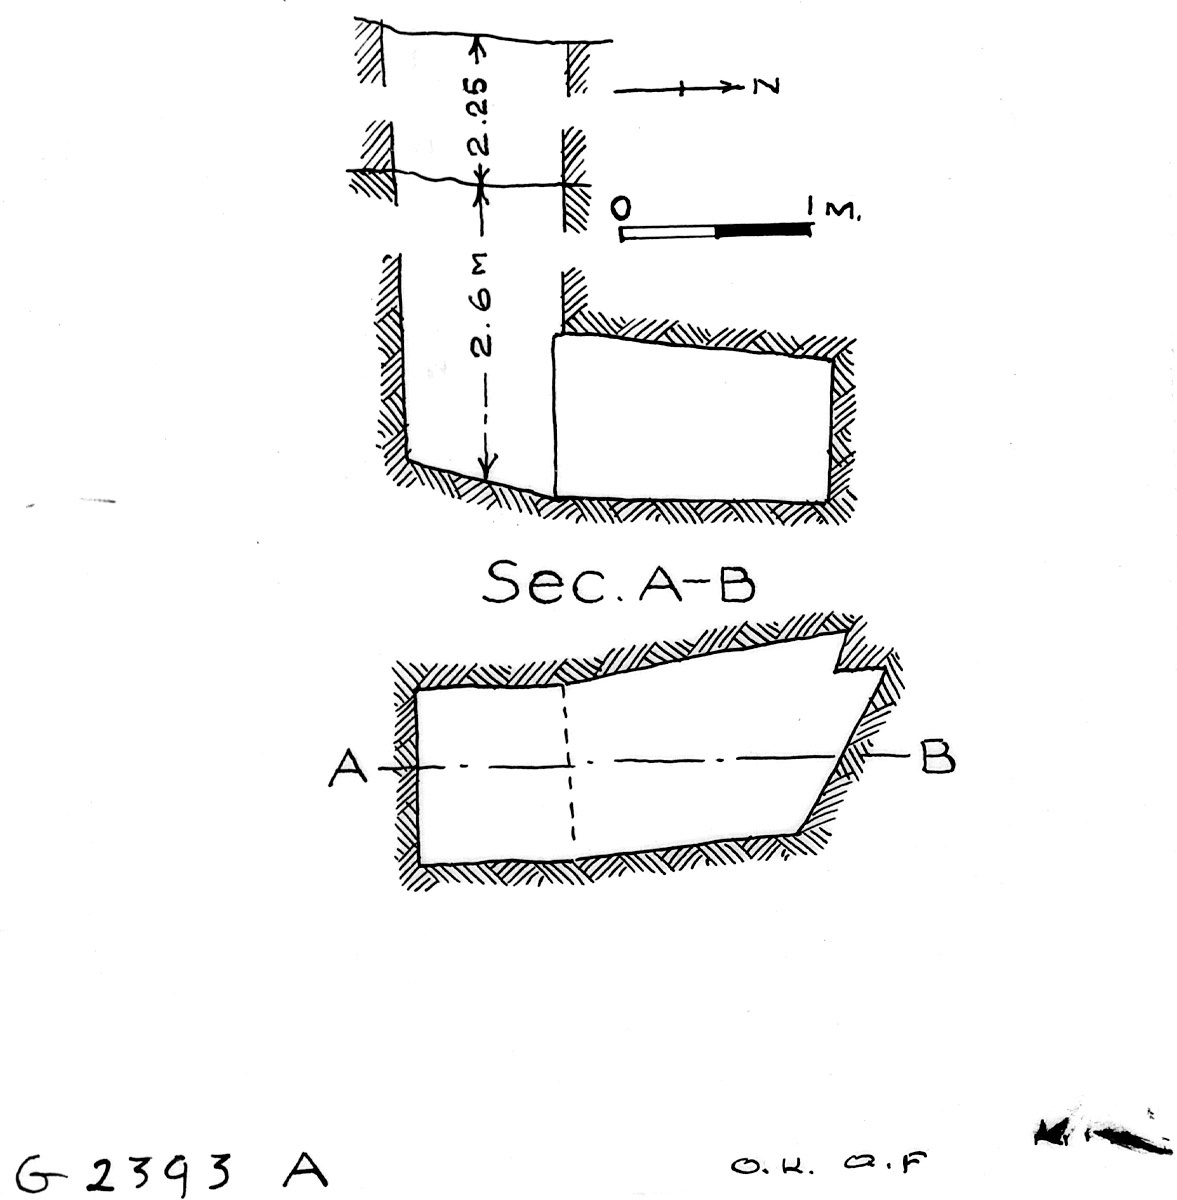 Maps and plans: G 2393, Shaft A